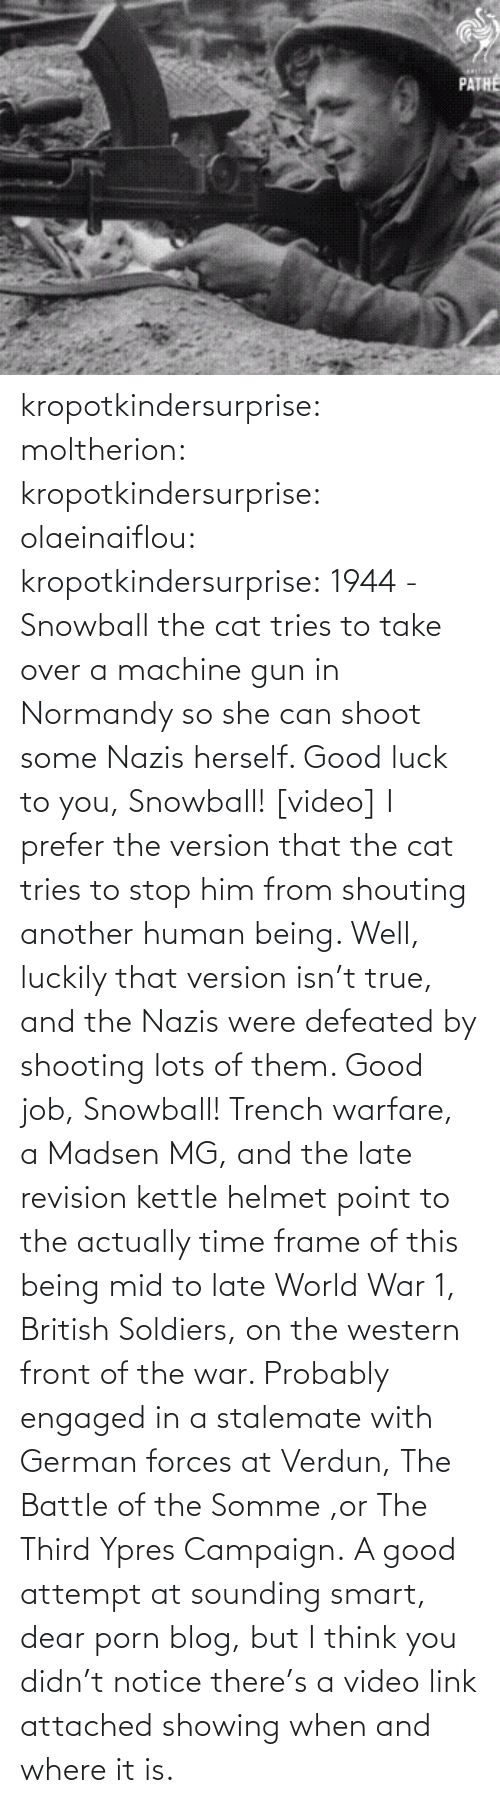 luckily: PATHE kropotkindersurprise: moltherion:  kropotkindersurprise:  olaeinaiflou:  kropotkindersurprise: 1944 - Snowball the cat tries to take over a machine gun in Normandy so she can shoot some Nazis herself. Good luck to you, Snowball! [video]  I prefer the version that the cat tries to stop him from shouting another human being.   Well, luckily that version isn't true, and the Nazis were defeated by shooting lots of them. Good job, Snowball!   Trench warfare, a Madsen MG, and the late revision kettle helmet point to the actually time frame of this being mid to late World War 1, British Soldiers, on the western front of the war. Probably engaged in a stalemate with German forces at Verdun, The Battle of the Somme ,or The Third Ypres Campaign.  A good attempt at sounding smart, dear porn blog, but I think you didn't notice there's a video link attached showing when and where it is.